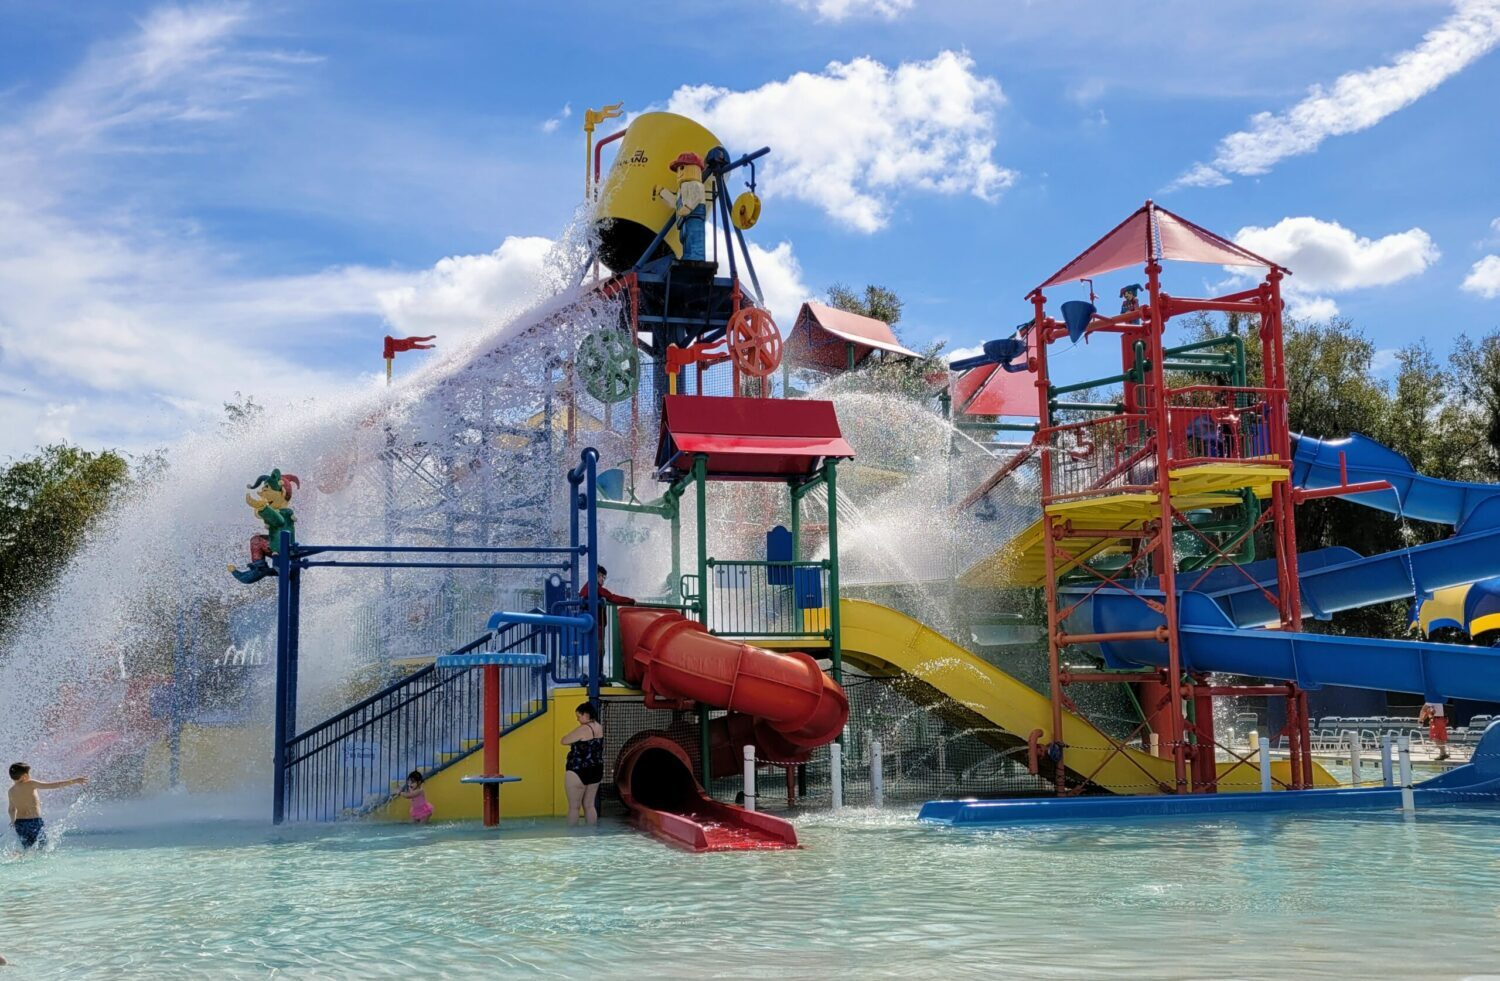 LEGOLAND Florida water park, a great place to visit with teens and tweens